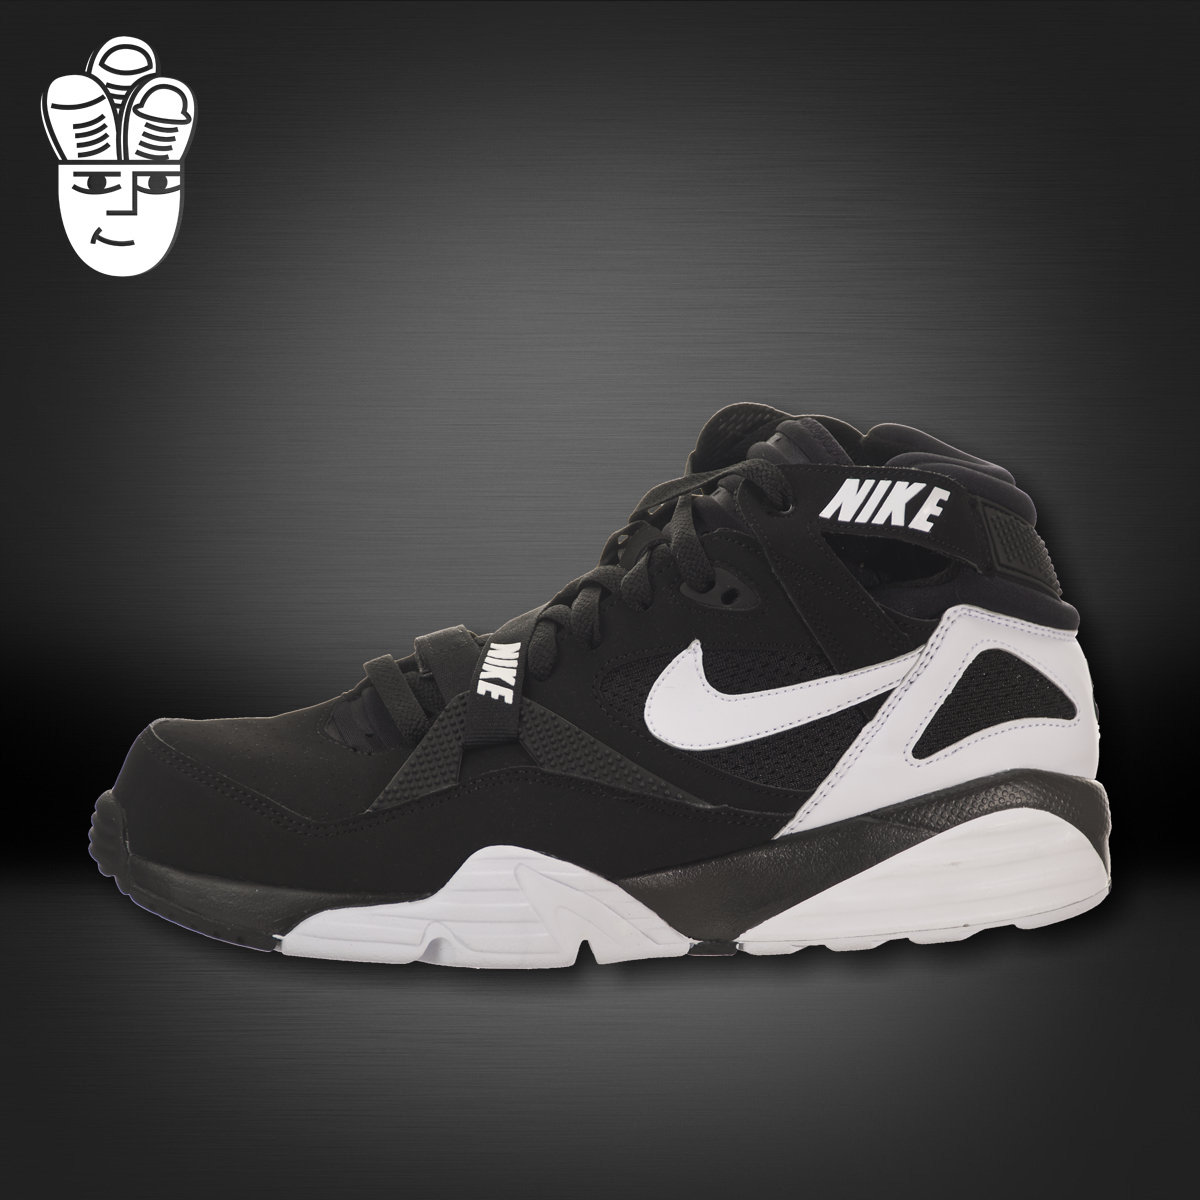 promo code 207c1 6f1e0 Get Quotations · Nike air max 91 mens nike air trainer training shoes  sports shoes 309748